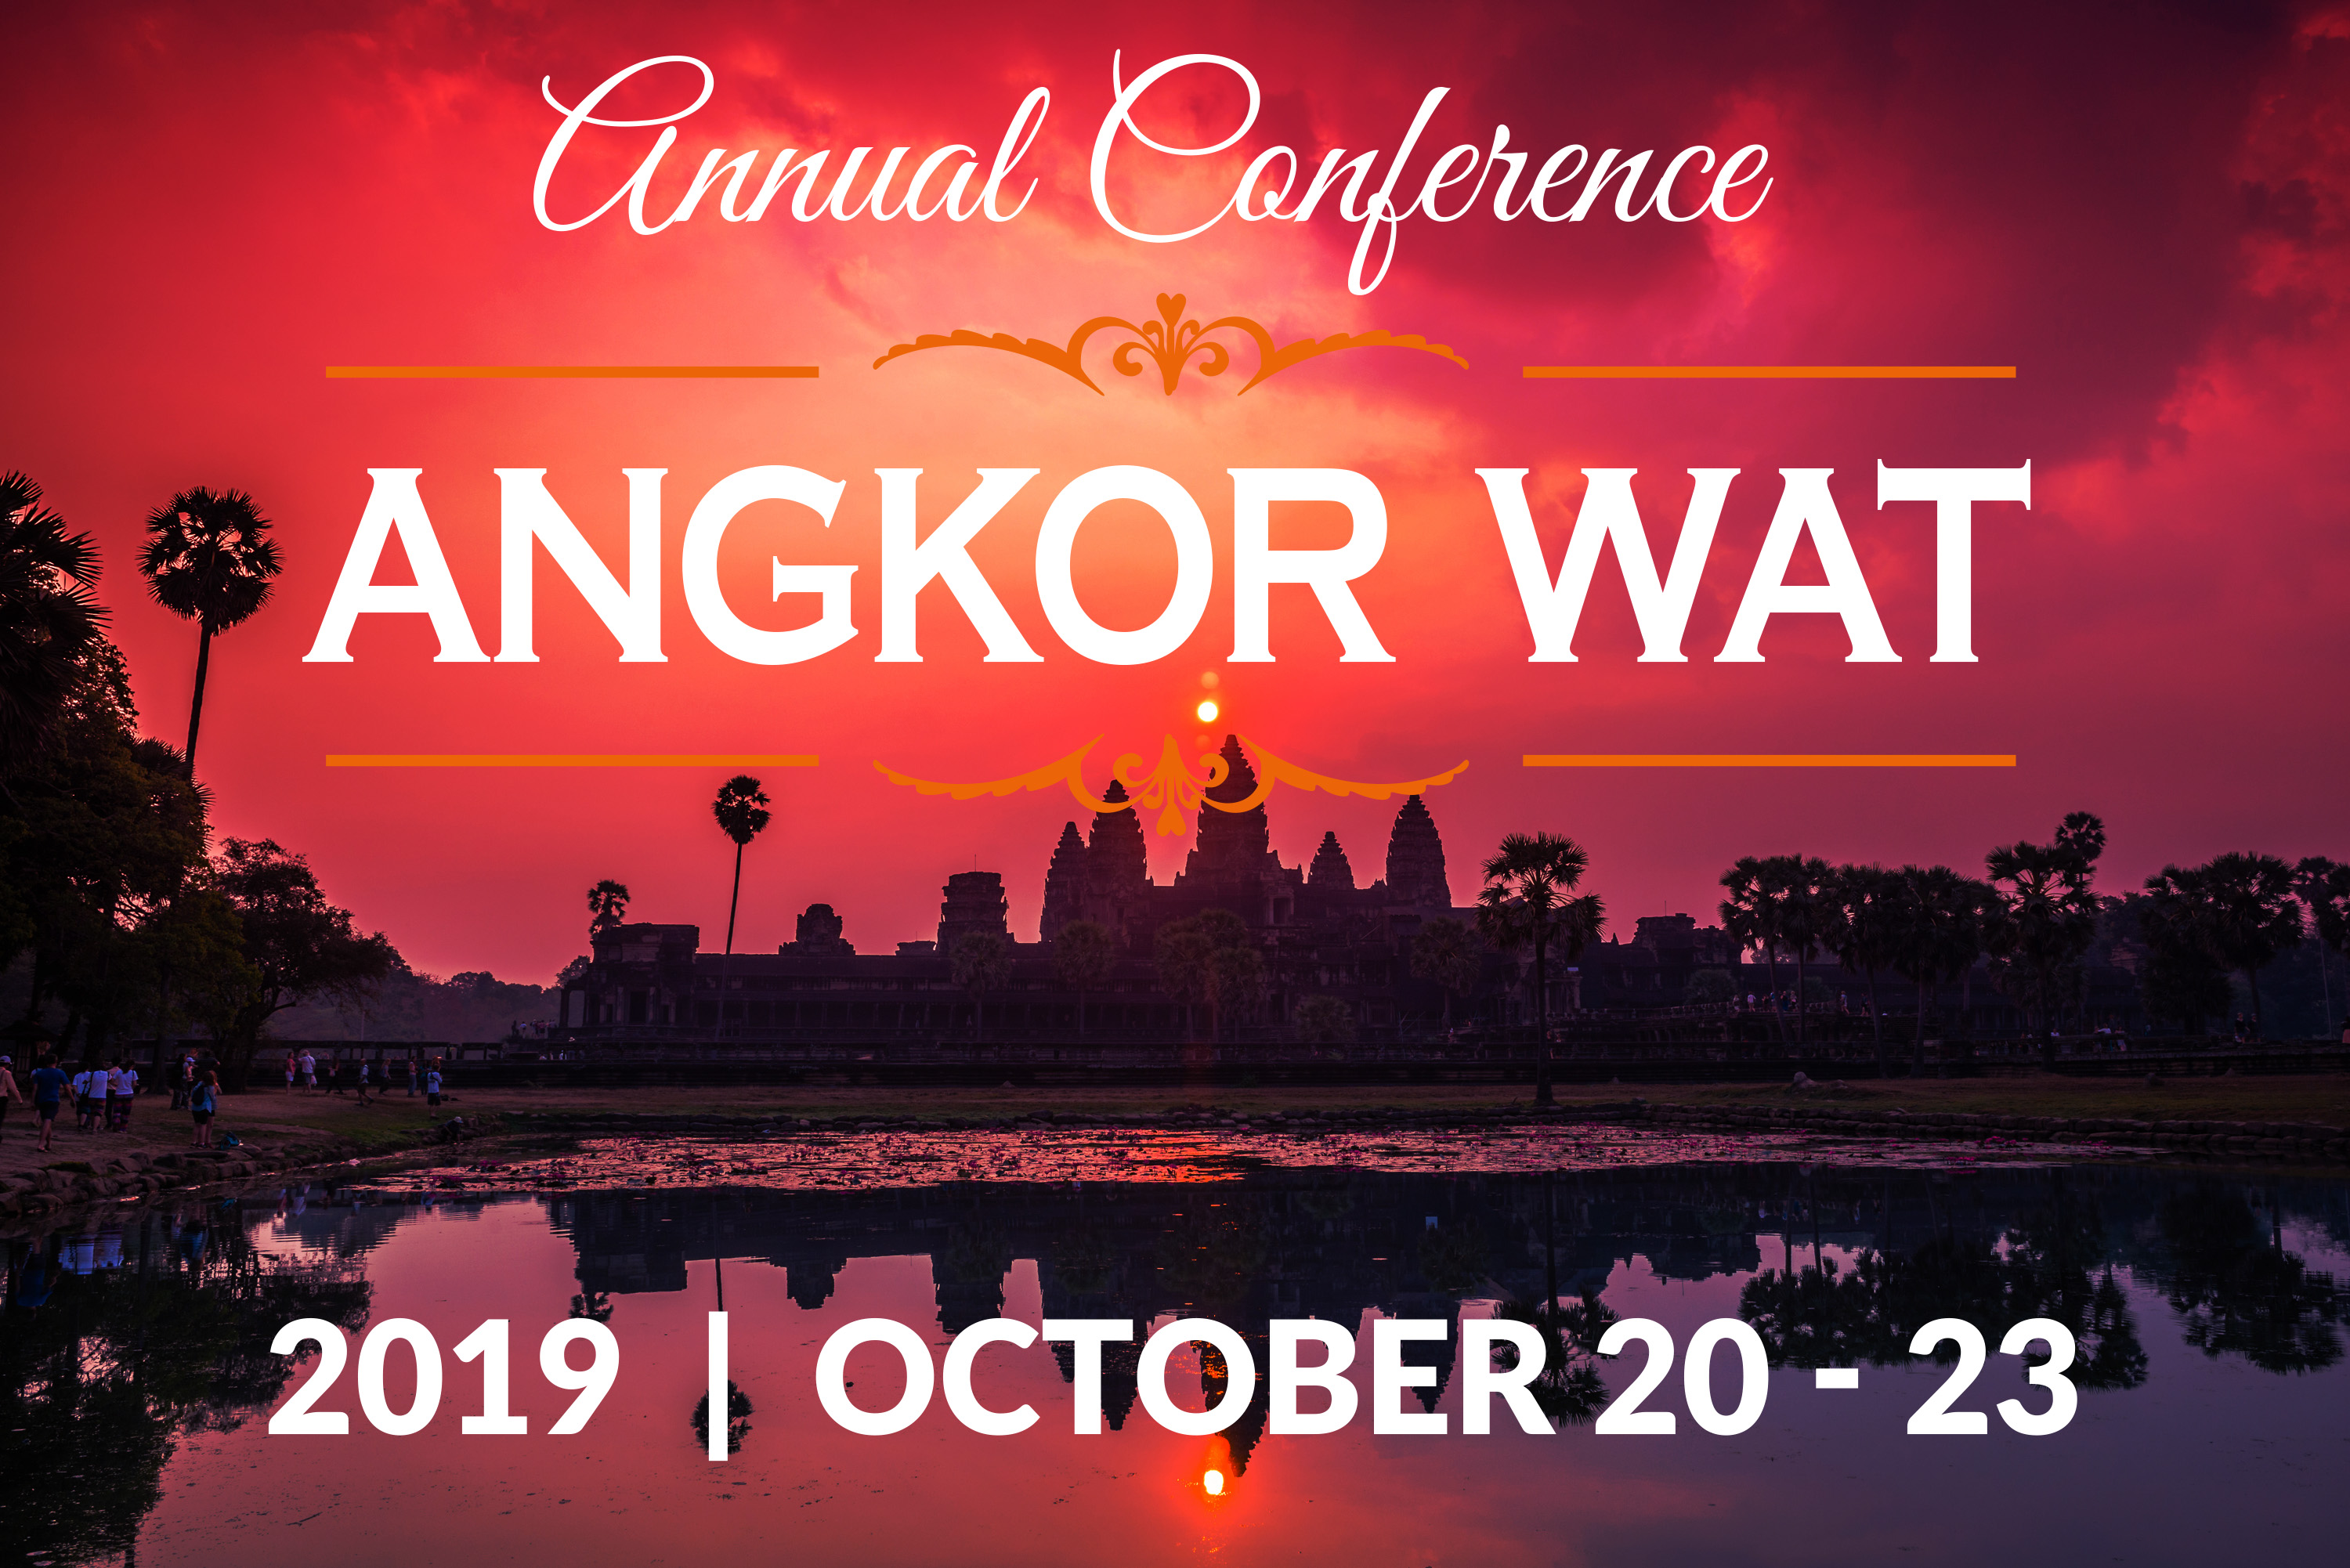 Atlas Logistic Network 20th annual Conference in Angkor Wat - October 20-23, 2019 1